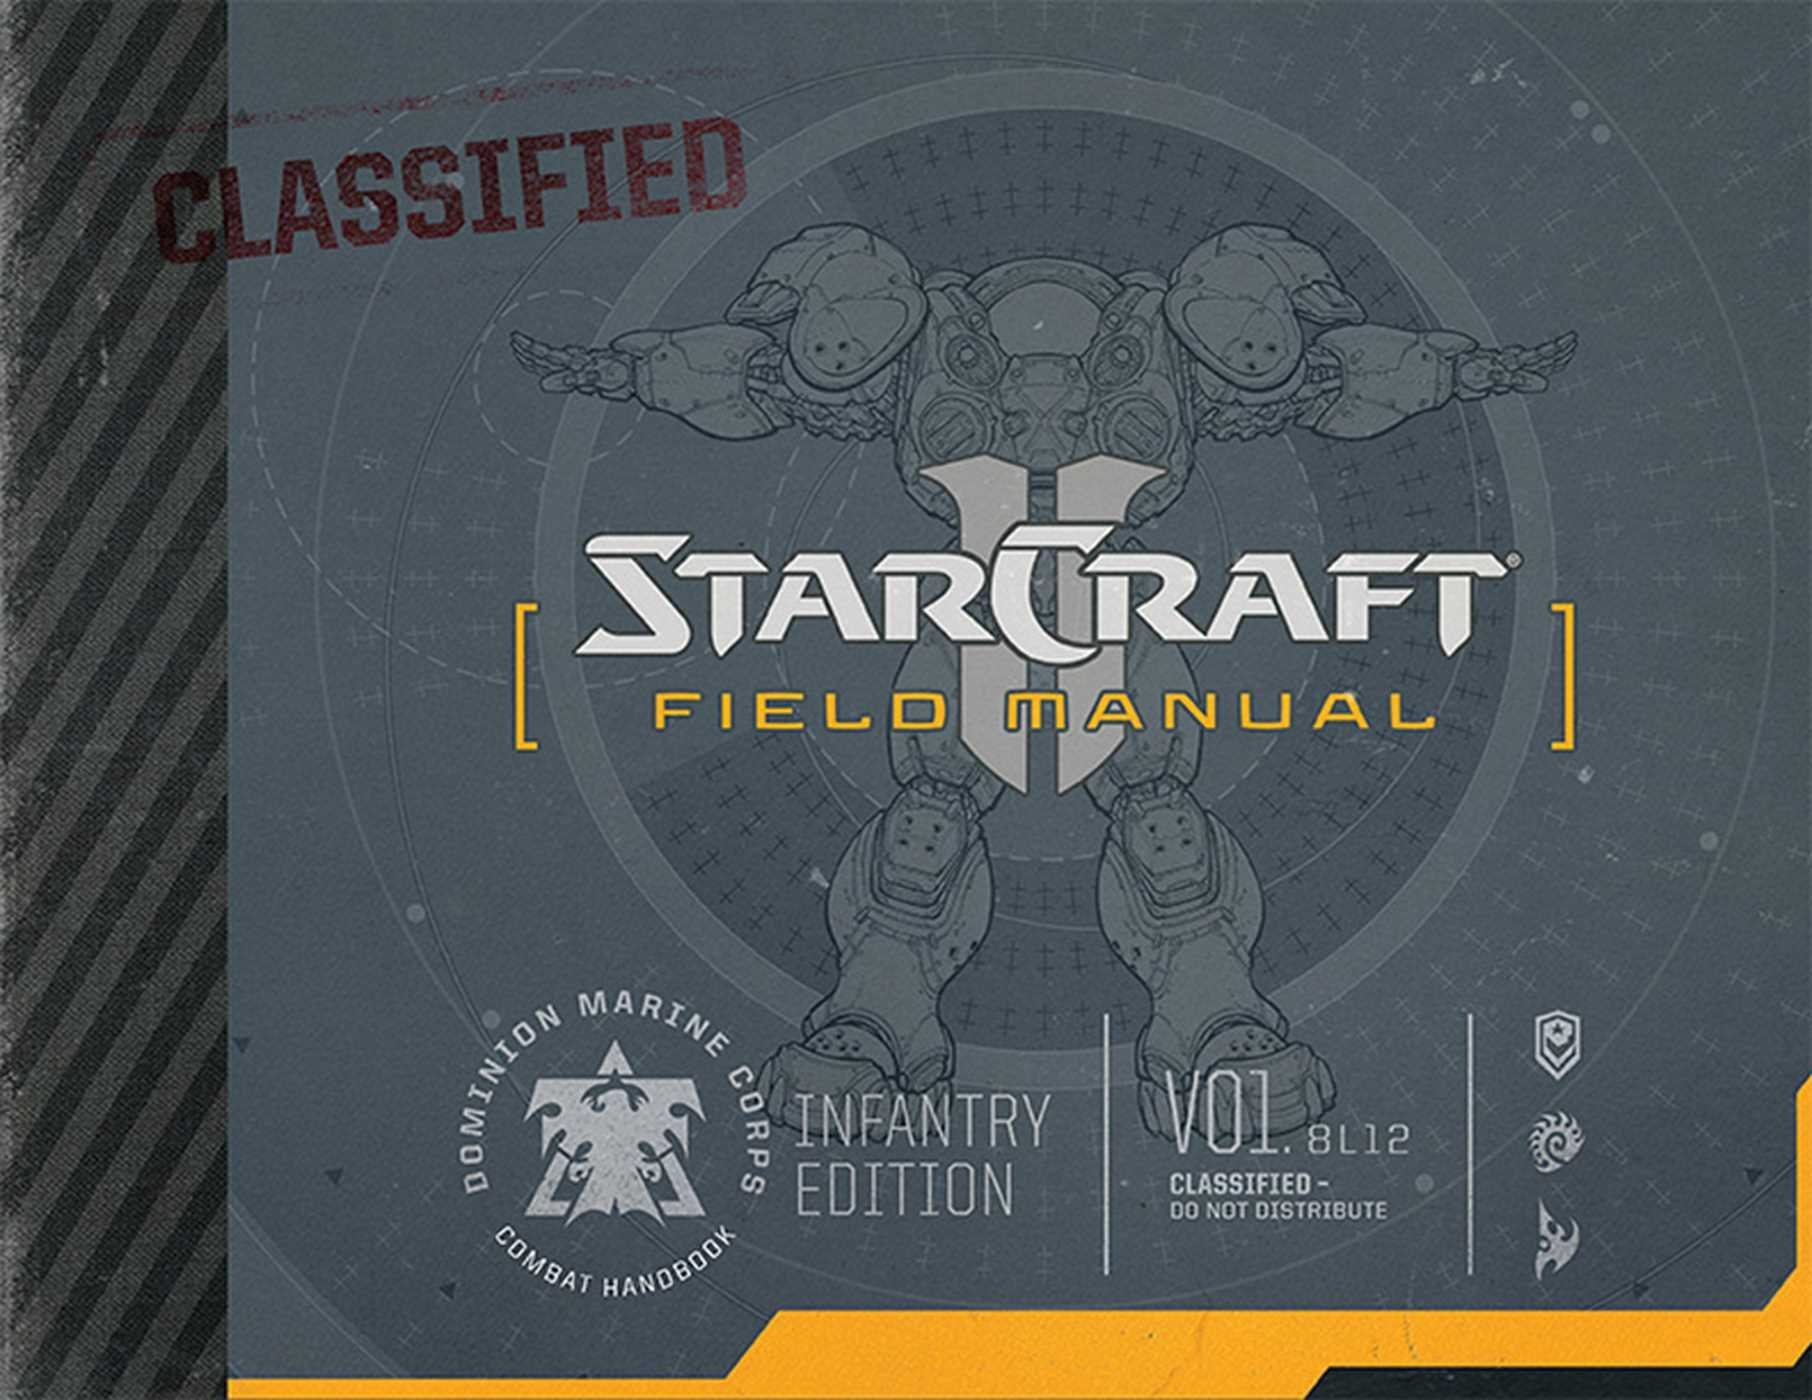 Amazon.com: StarCraft II: Field Manual (9781608874507): Rick Barba: Books